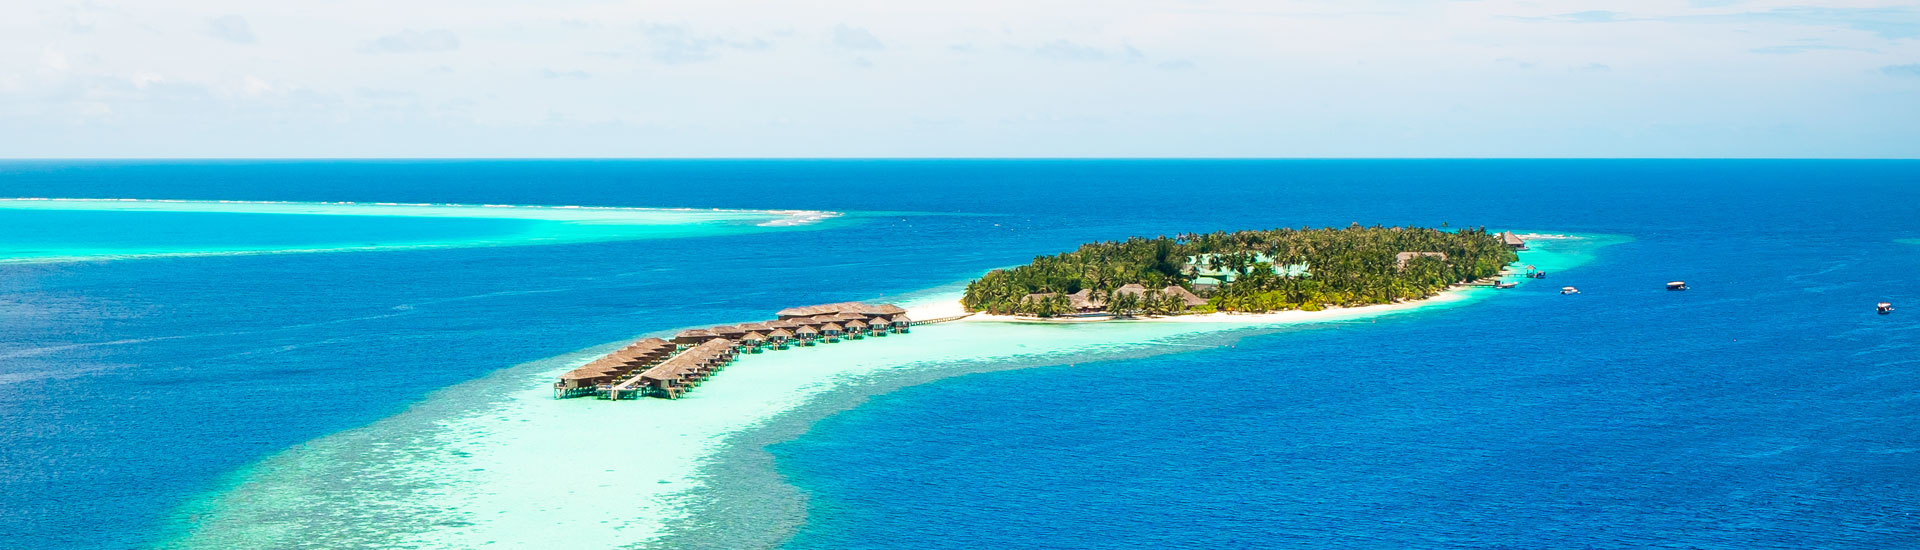 top 10 Unbelievable and Amazing facts About The Indian Ocean |Indian Ocean Facts